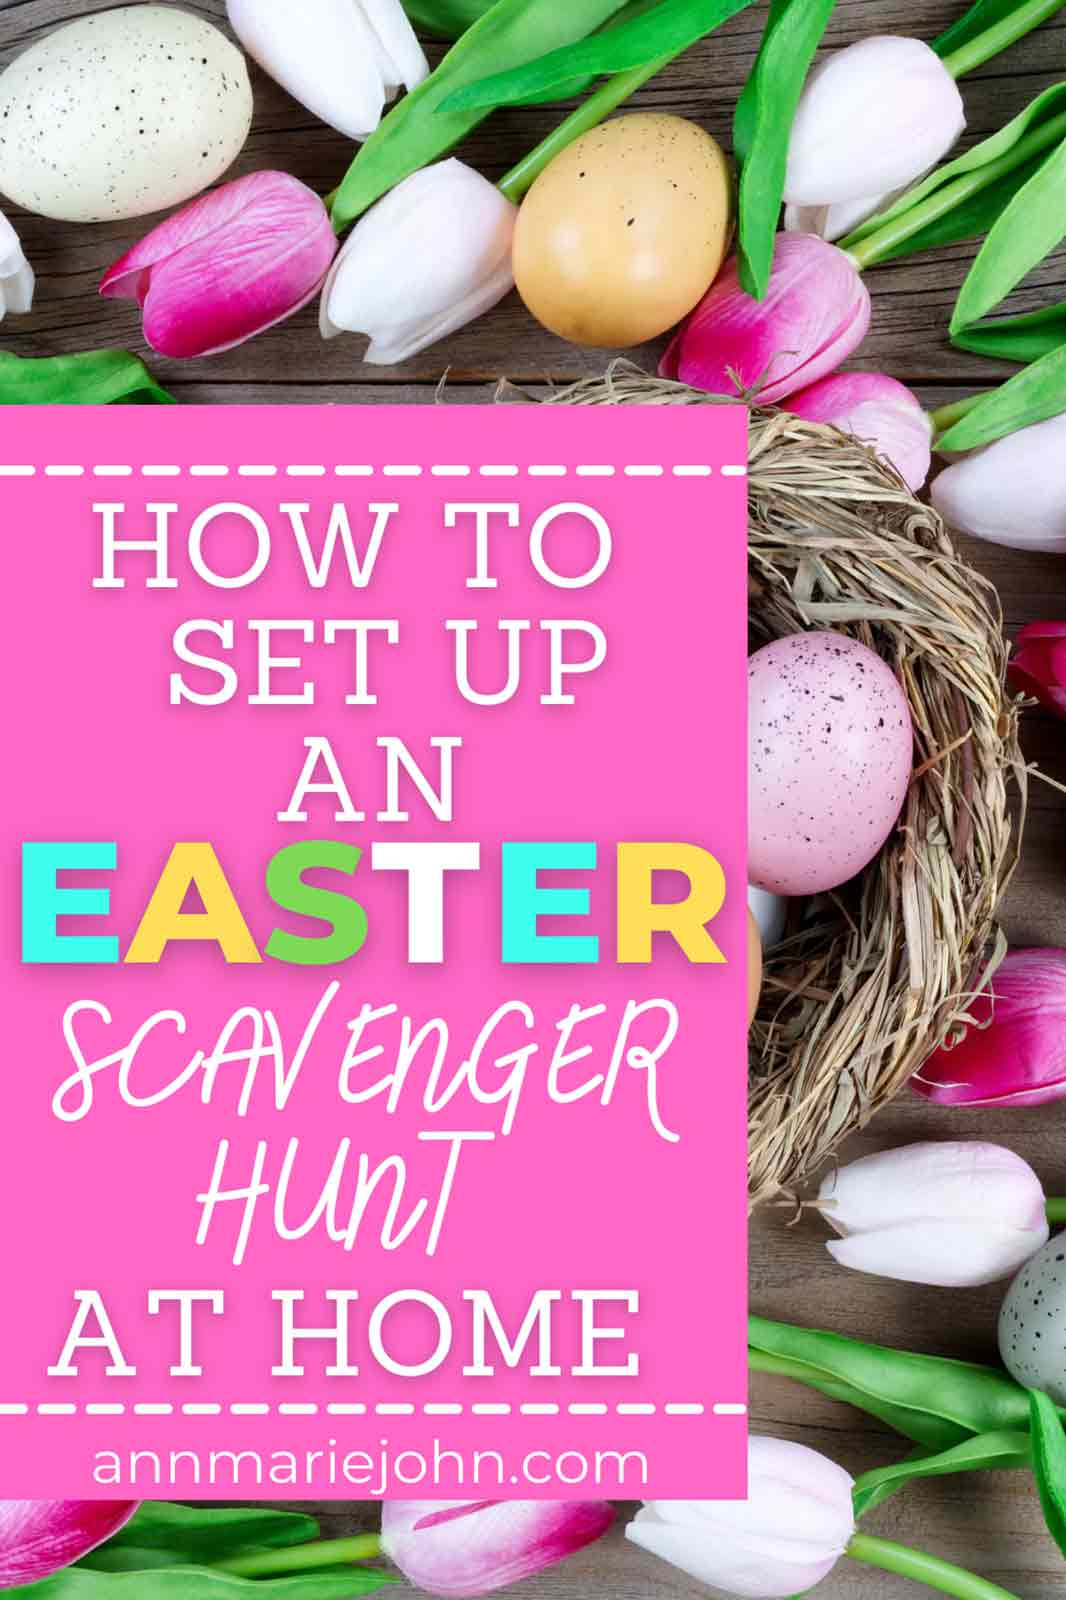 How to Set up an Easter Scavenger Hunt at Home